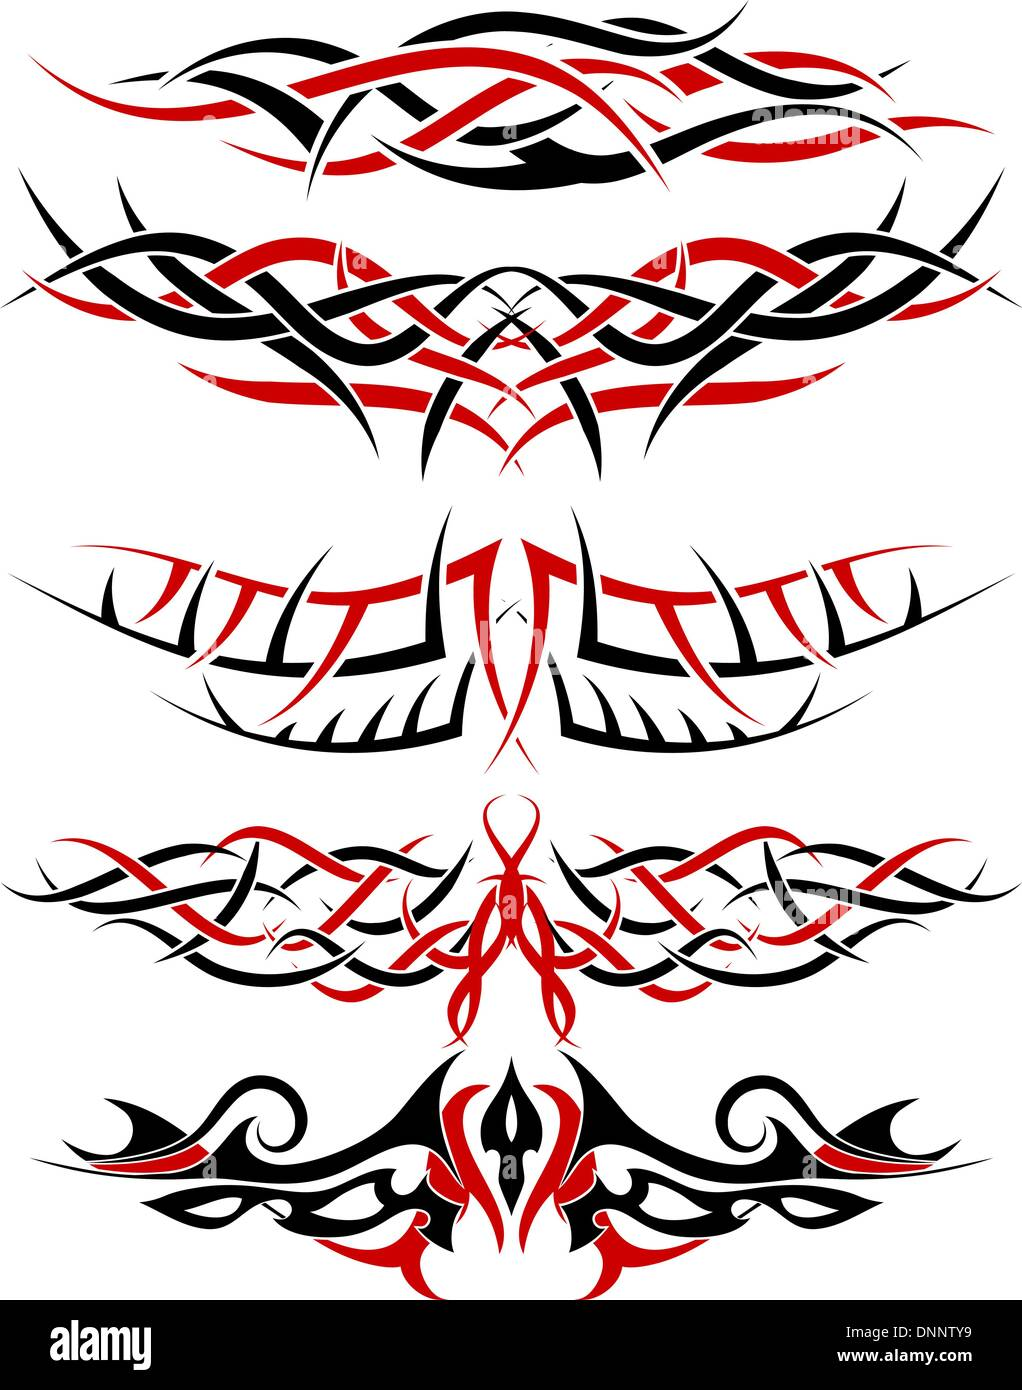 Black With Red Patterns Of Tribal Tattoo For Design Use Stock Vector